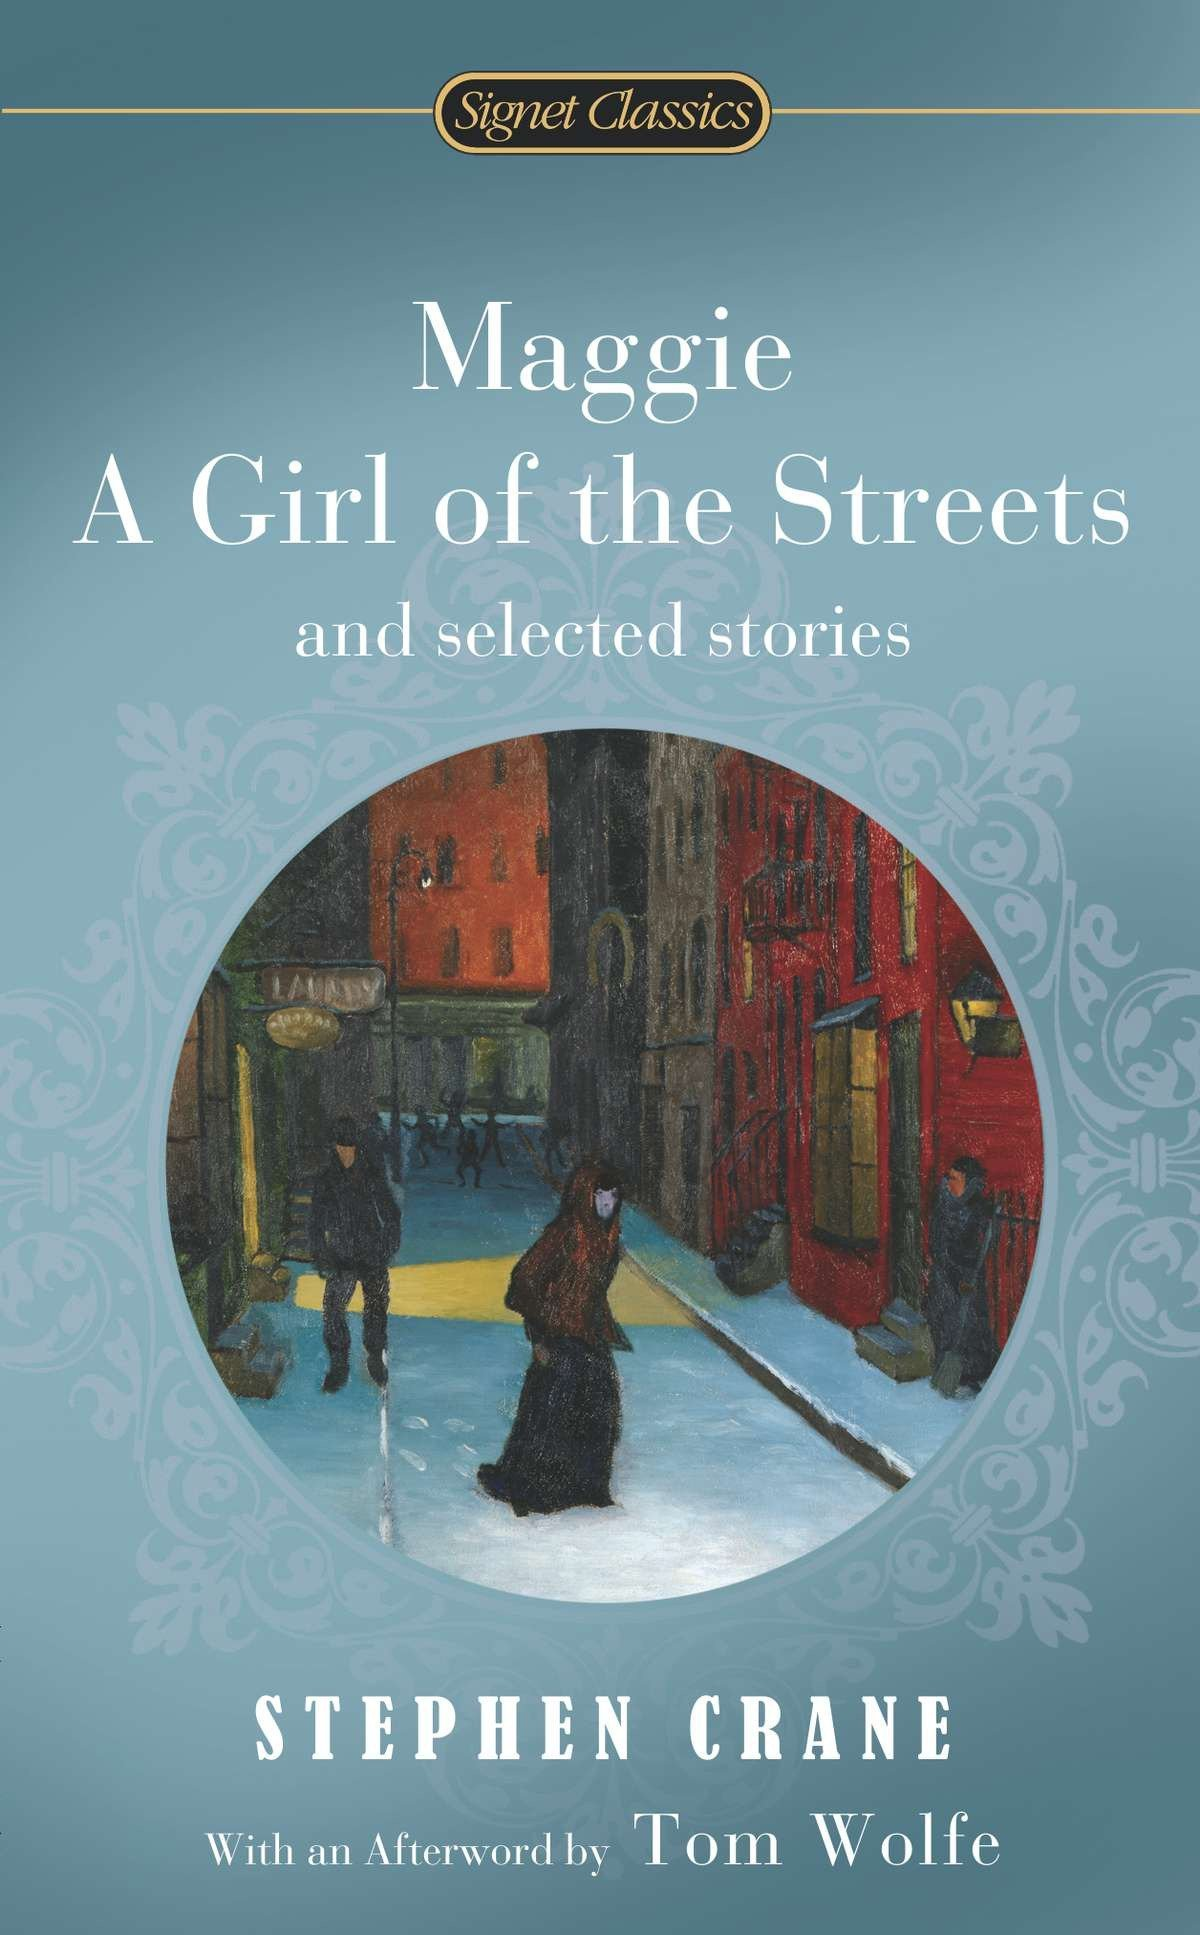 Maggie, a Girl of the Streets and Selected Stories (Signet Classics) PDF ePub book